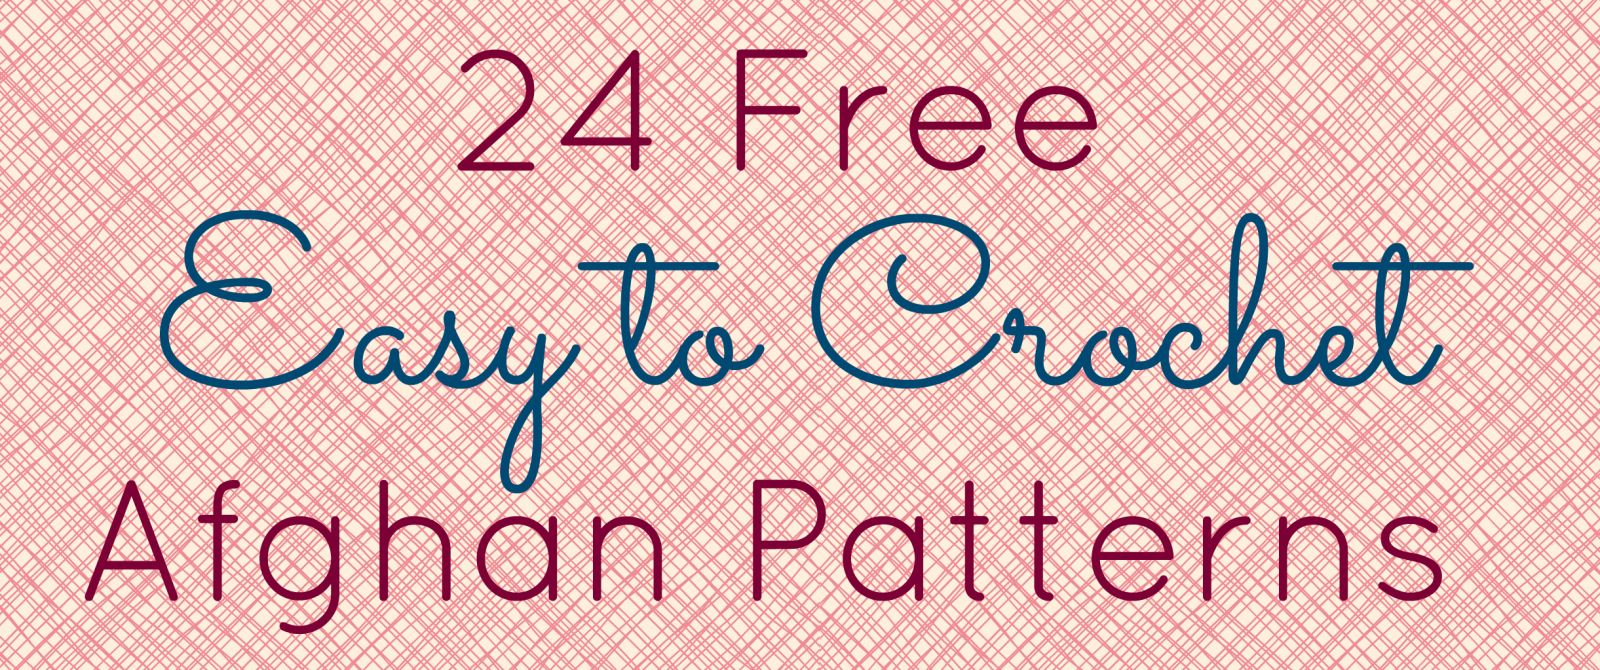 Just Updated 24 Free Easy Patterns Stitch And Unwind